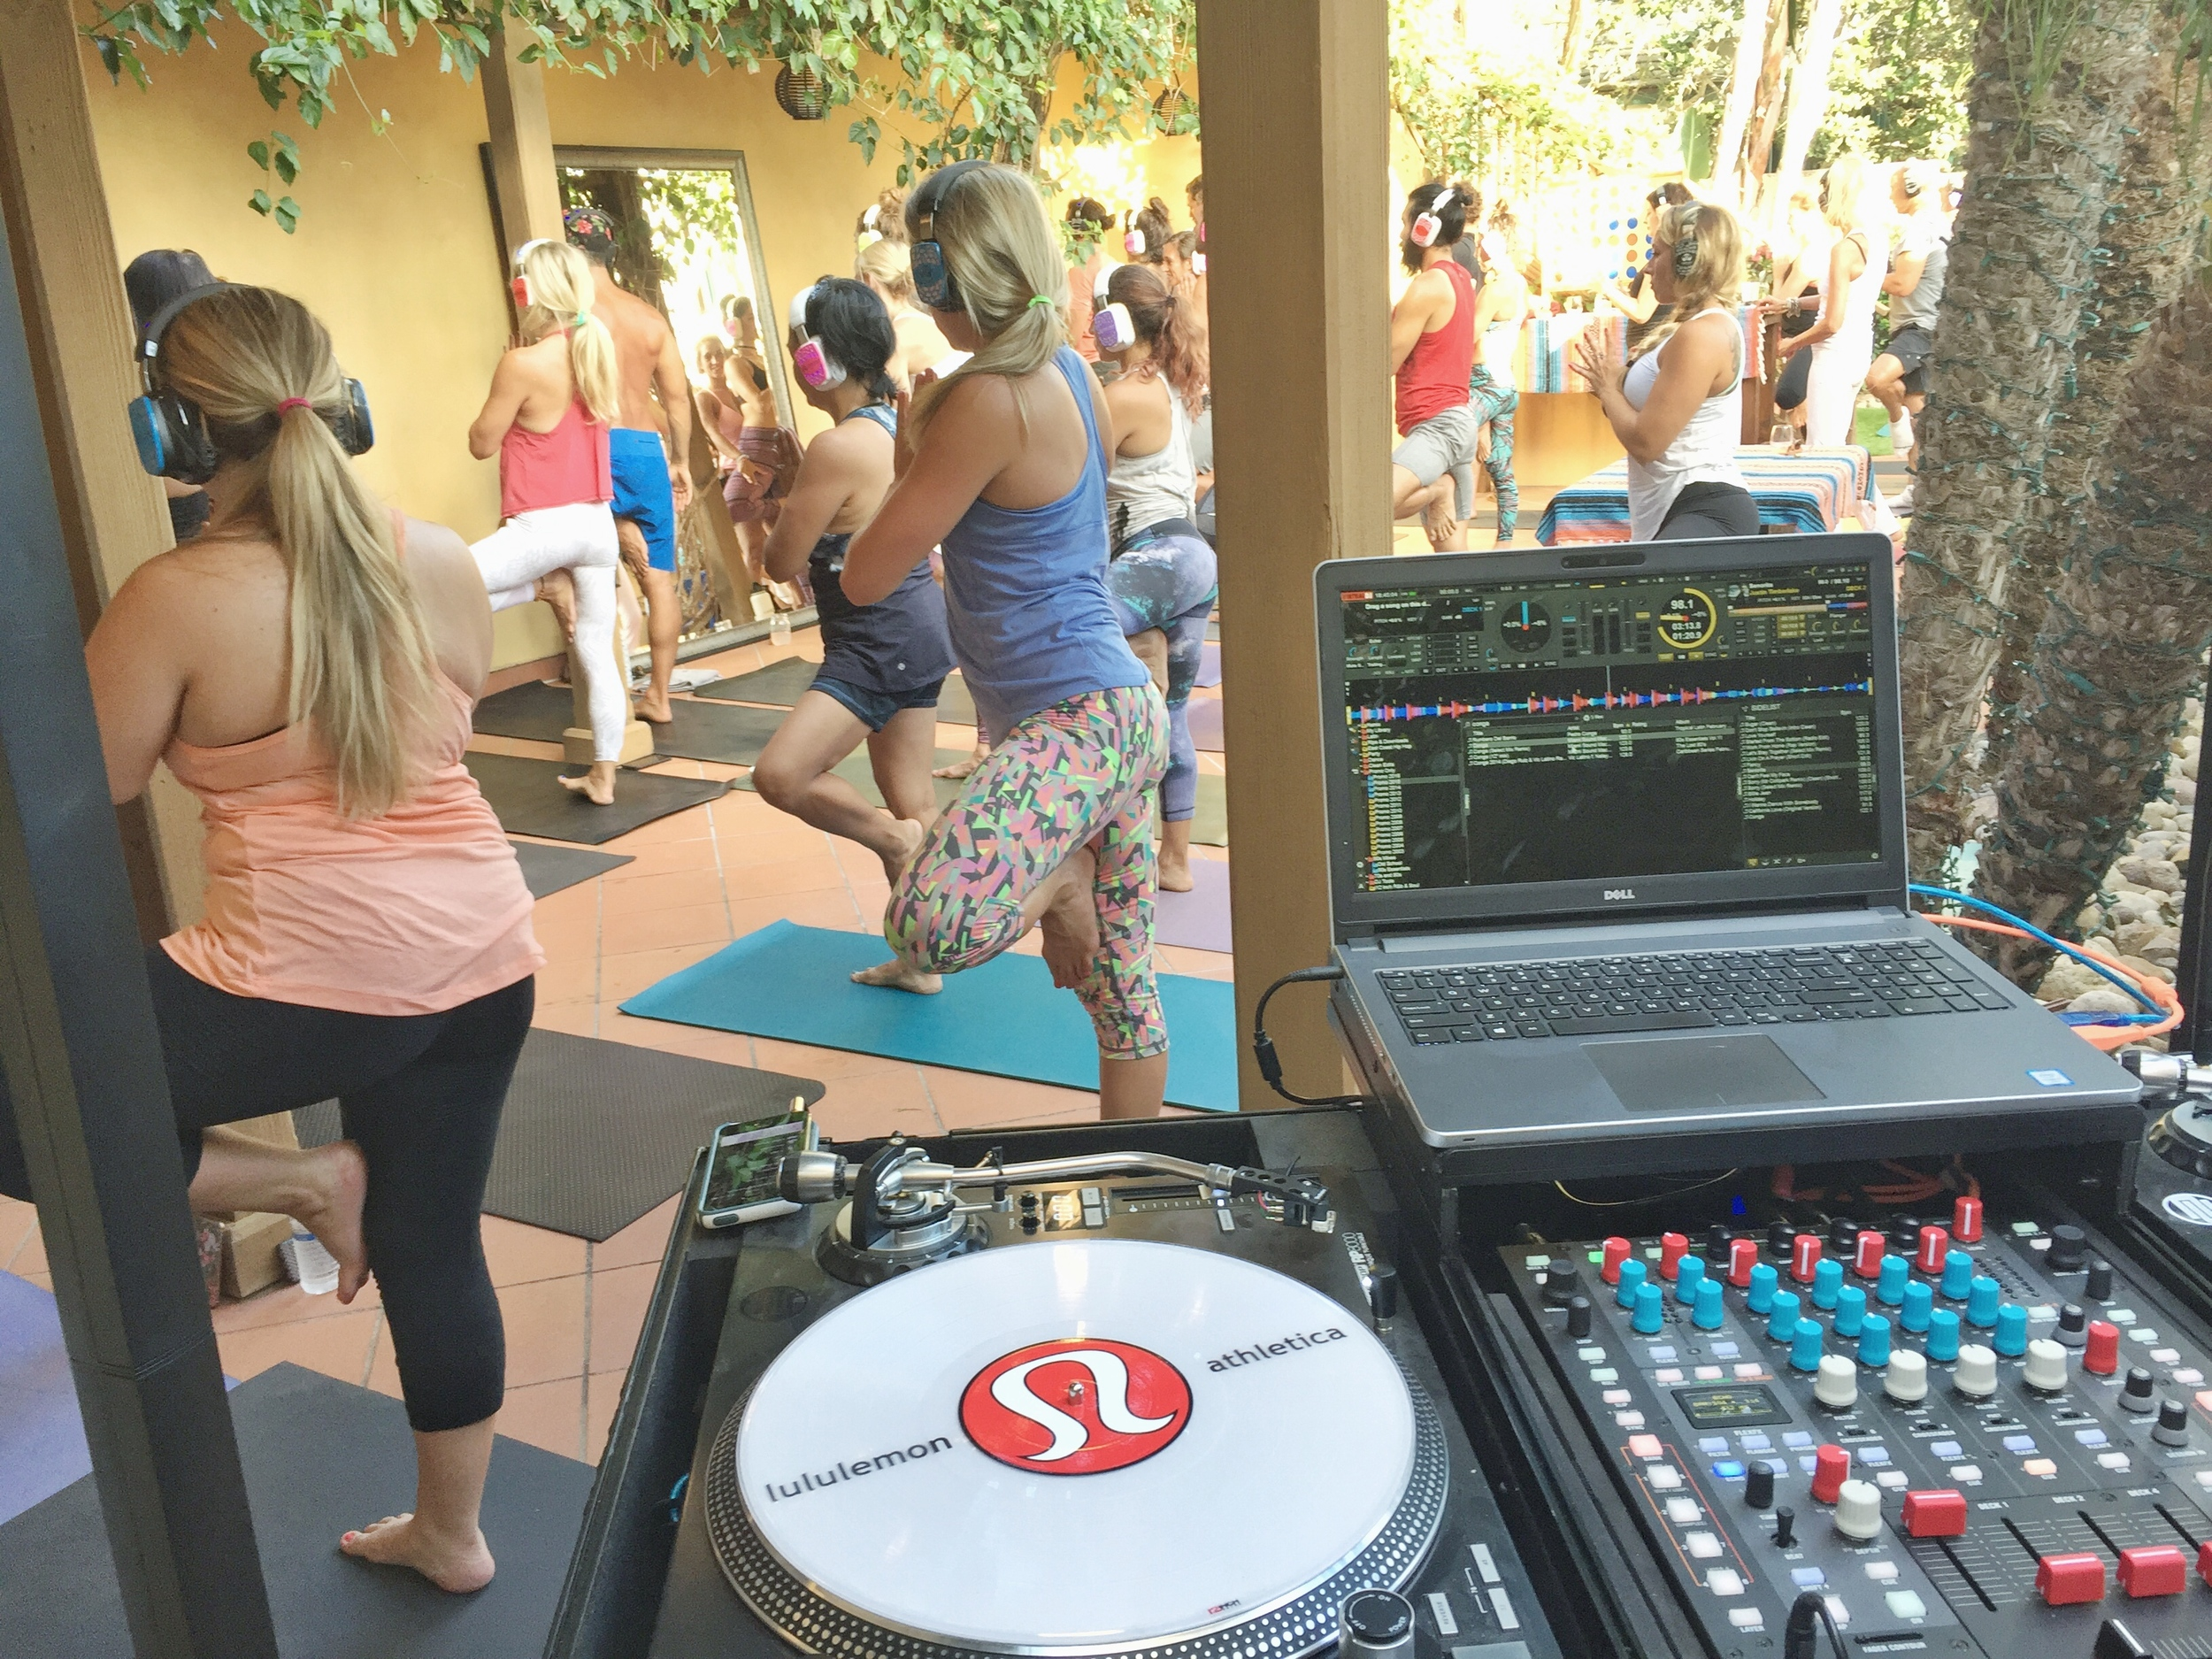 Shhh, we're doing silent yoga. Attendees experience yoga while music and instructions are piped through their headphones. San Diego yoga and fitness DJ, Justin Kanoya, spun the tunes for this event.